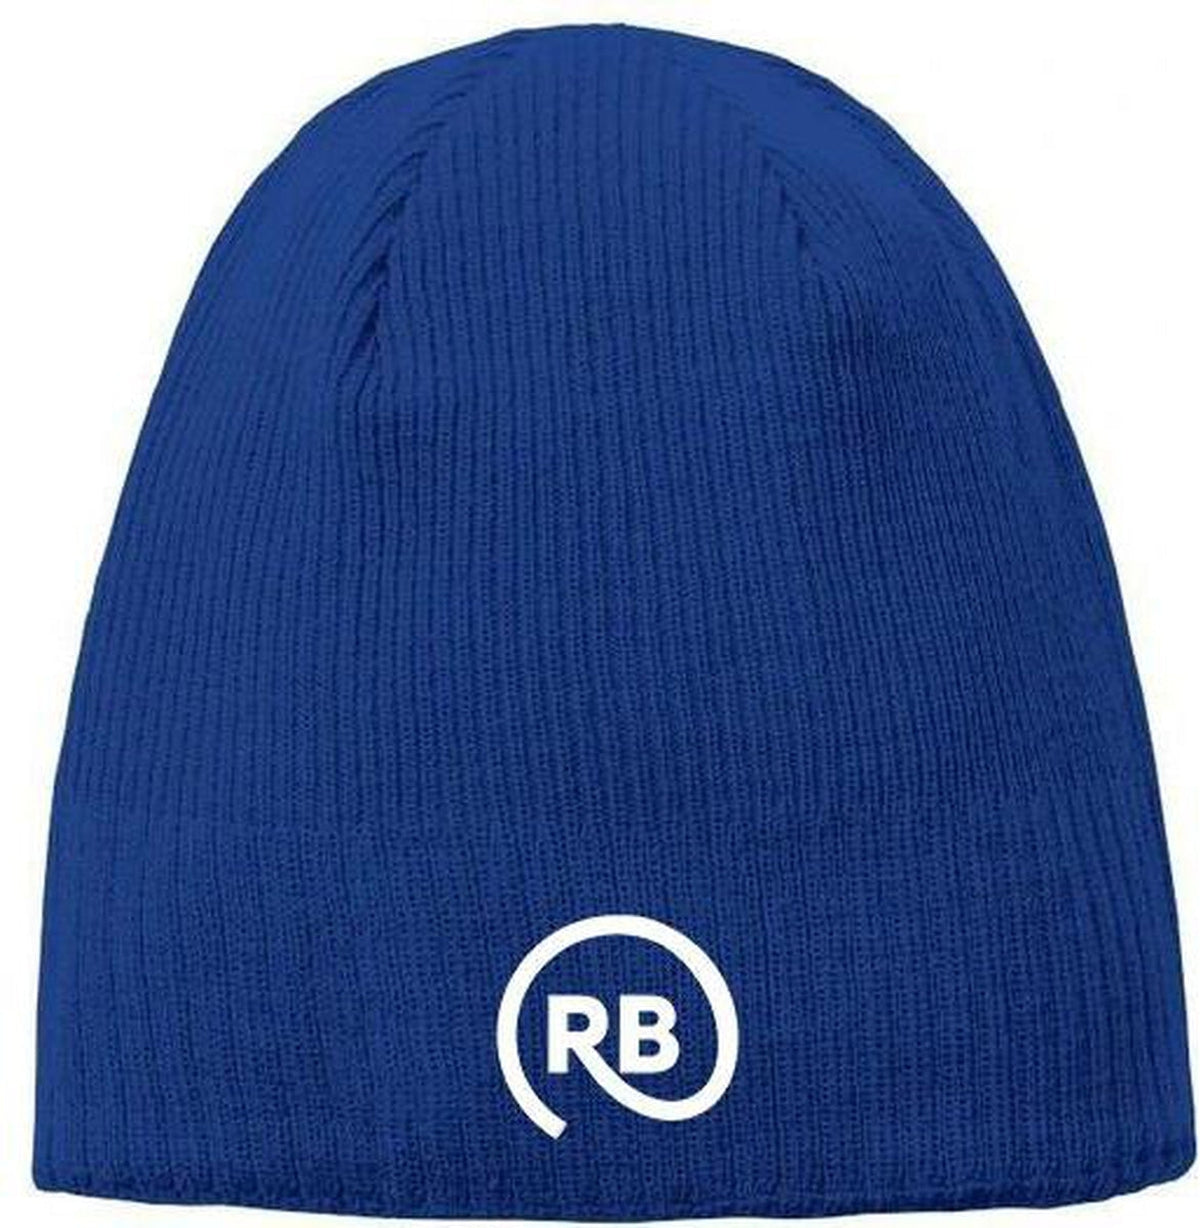 New Era Knit Beanie